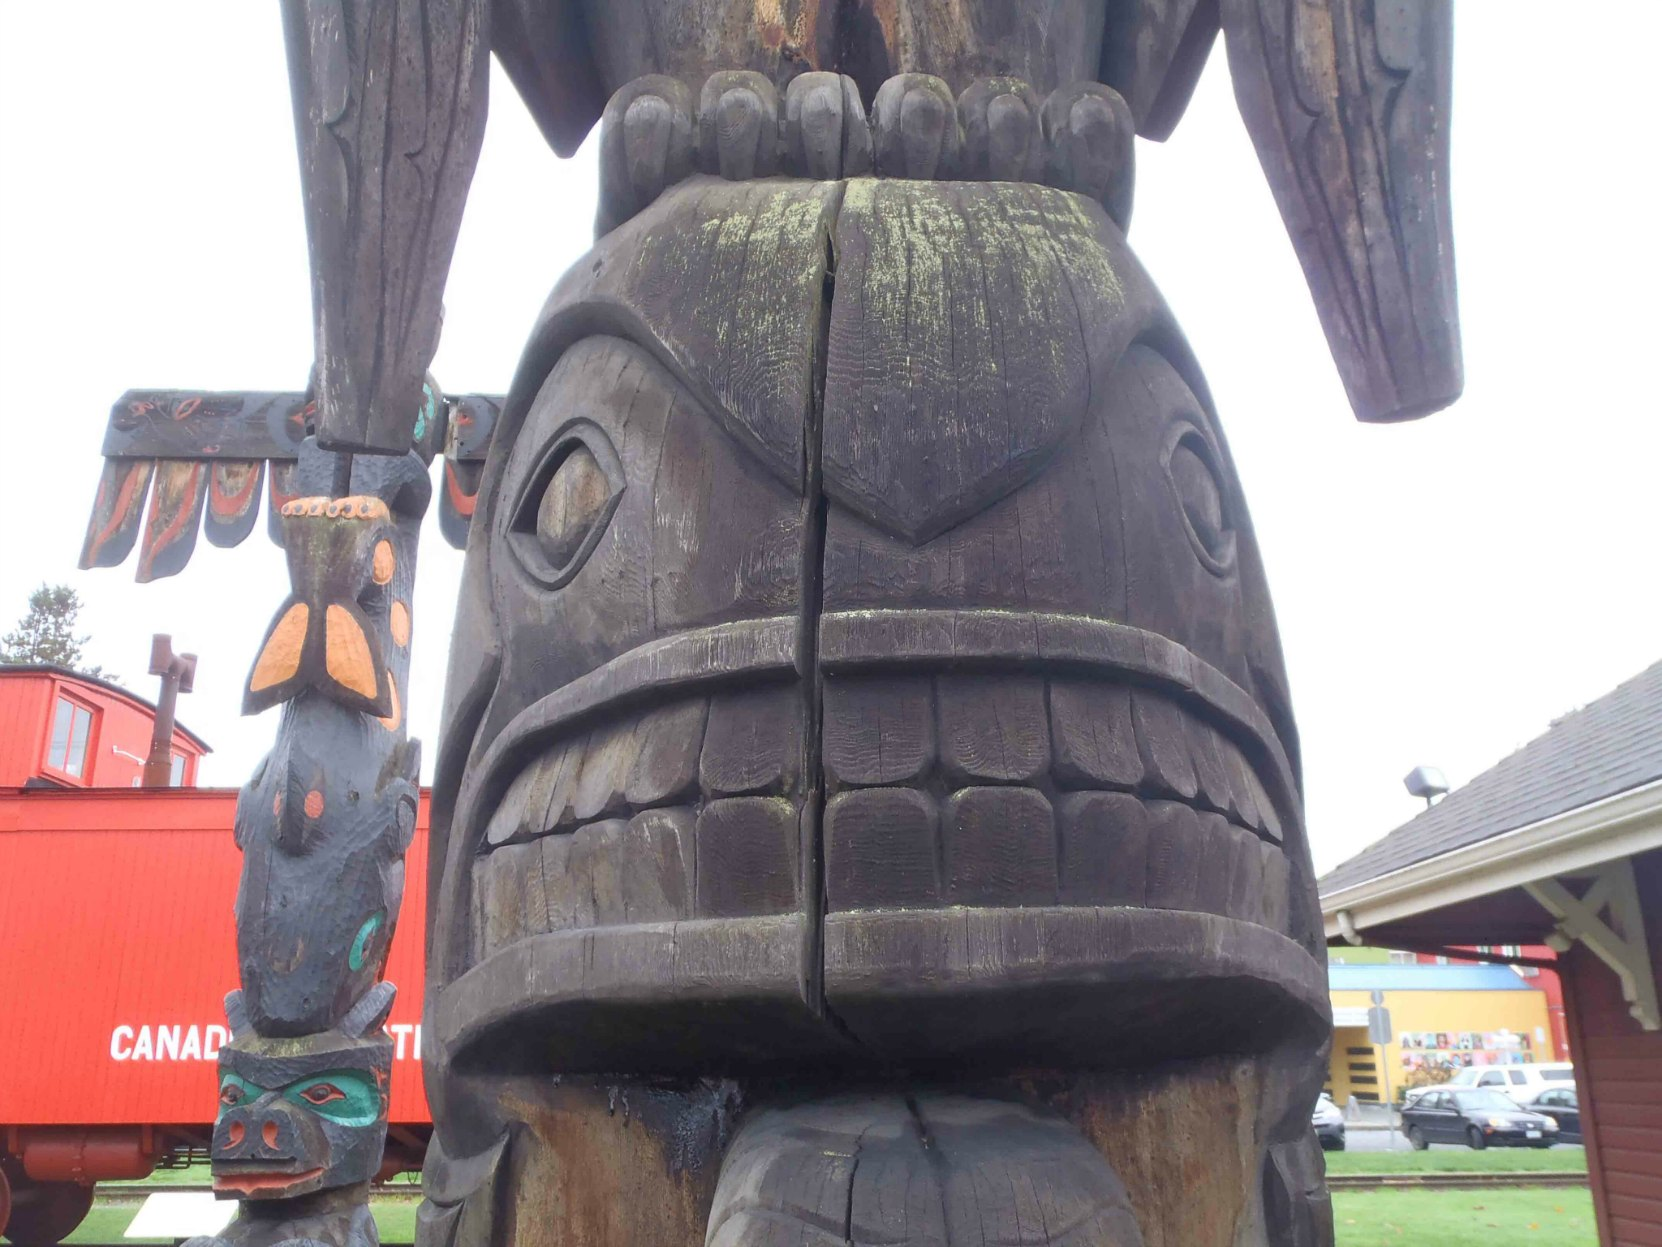 Transformation totem pole, Killer Whale figure detail - Canada Avenue, Duncan